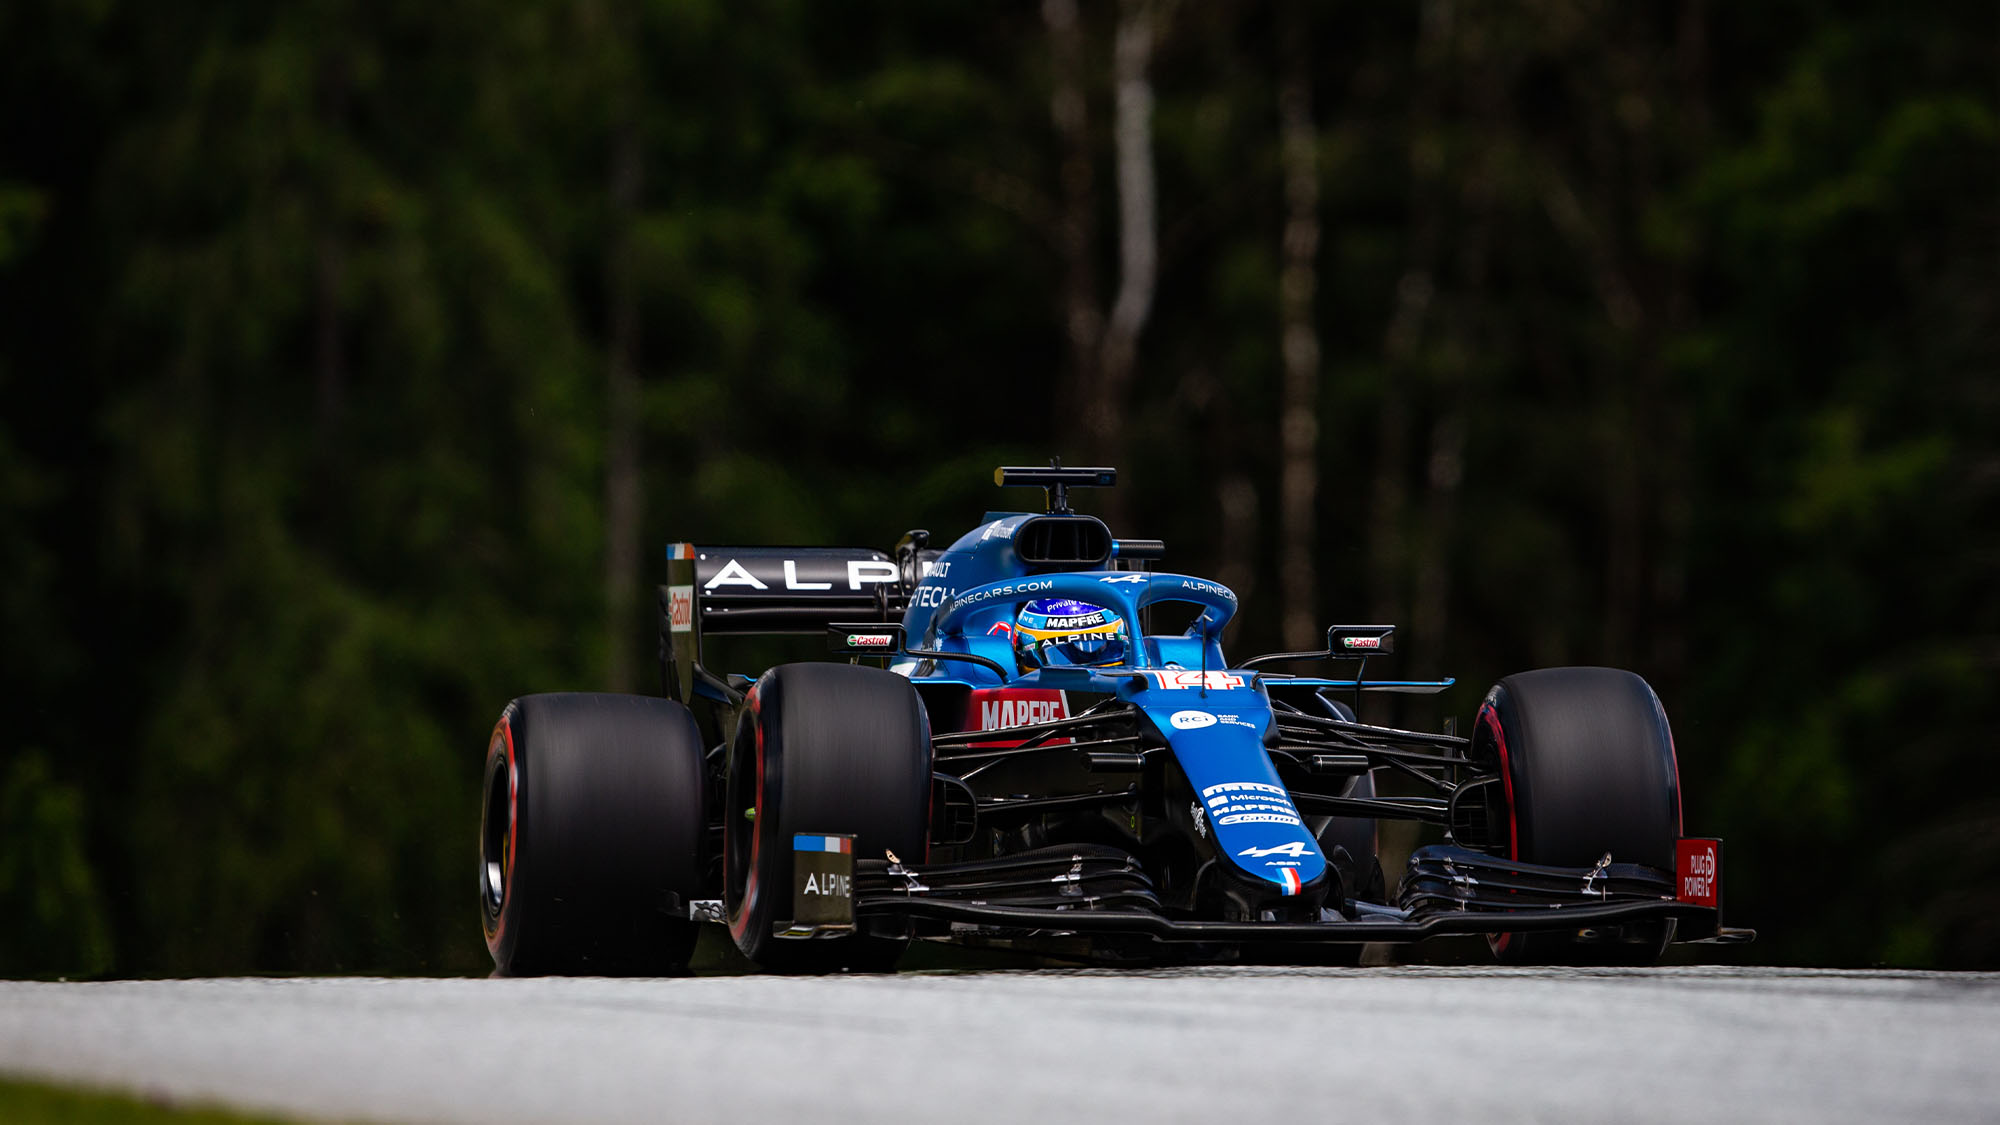 14 ALONSO Fernando (spa), Alpine F1 A521, action during the Formula 1 Grosser Preis Der Steiermark 2021, 2021 Styrian Grand Prix, 8th round of the 2021 FIA Formula One World Championship from June 25 to 27, 2021 on the Red Bull Ring, in Spielberg, Austria - Photo Joao Filipe / DPPI